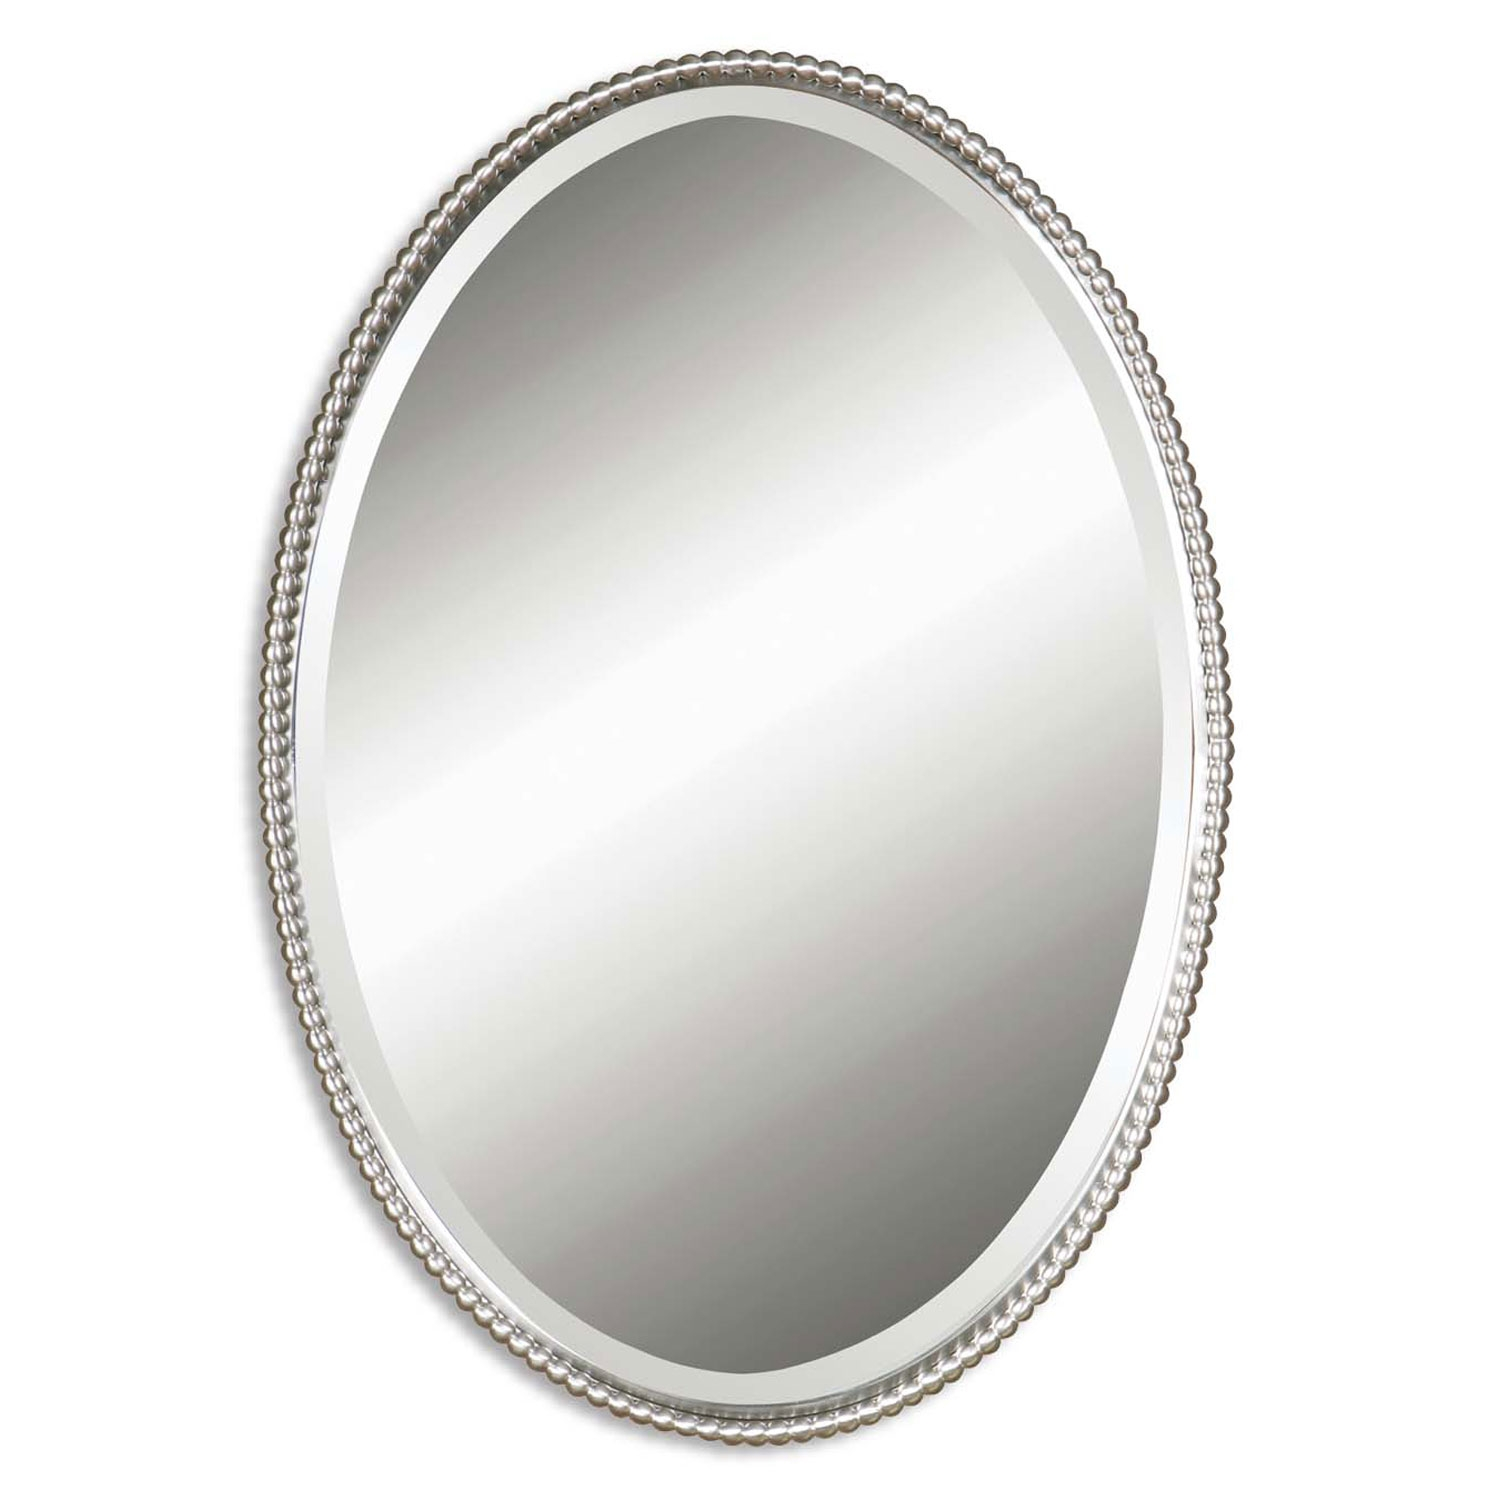 Sherise Brushed Nickel Oval Mirror Uttermost Oval Mirrors Home Decor Regarding Large Oval Mirrors (View 8 of 15)